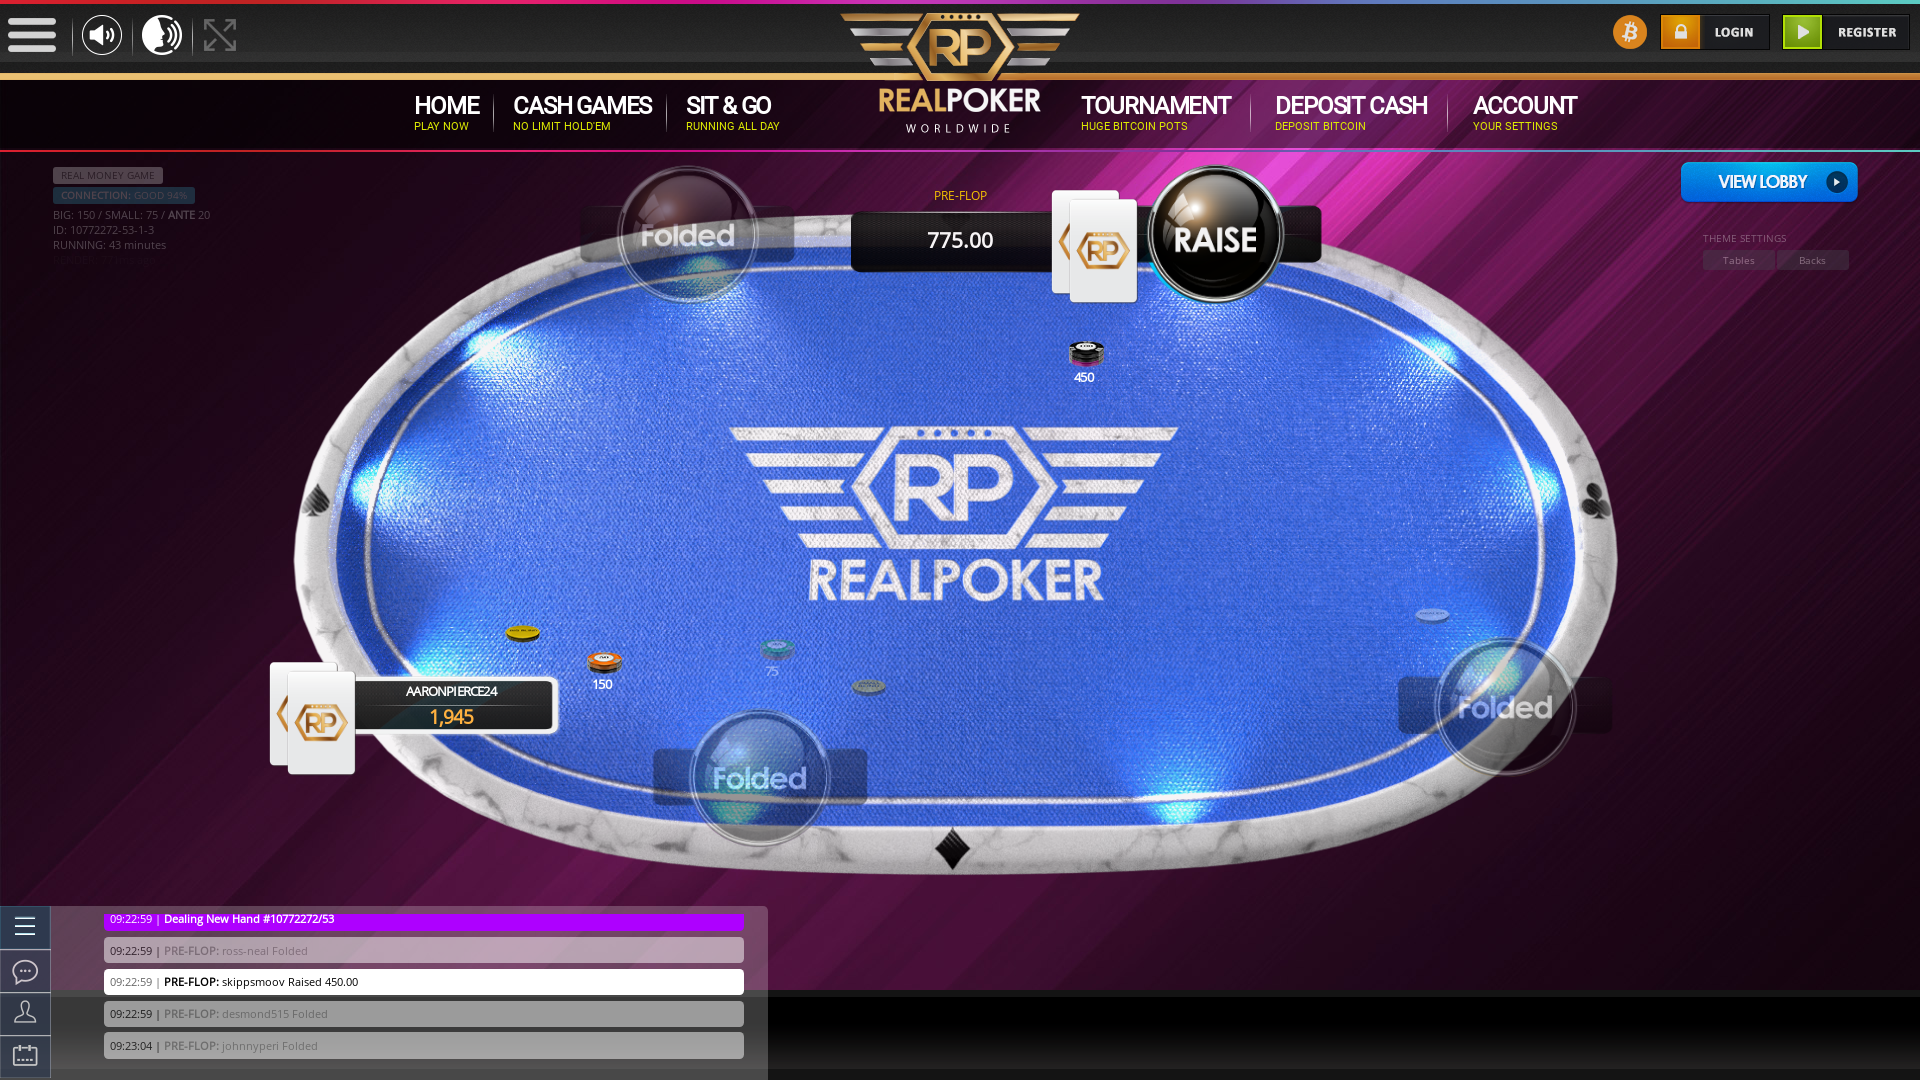 10 player texas holdem table at real poker with the table id 10772272